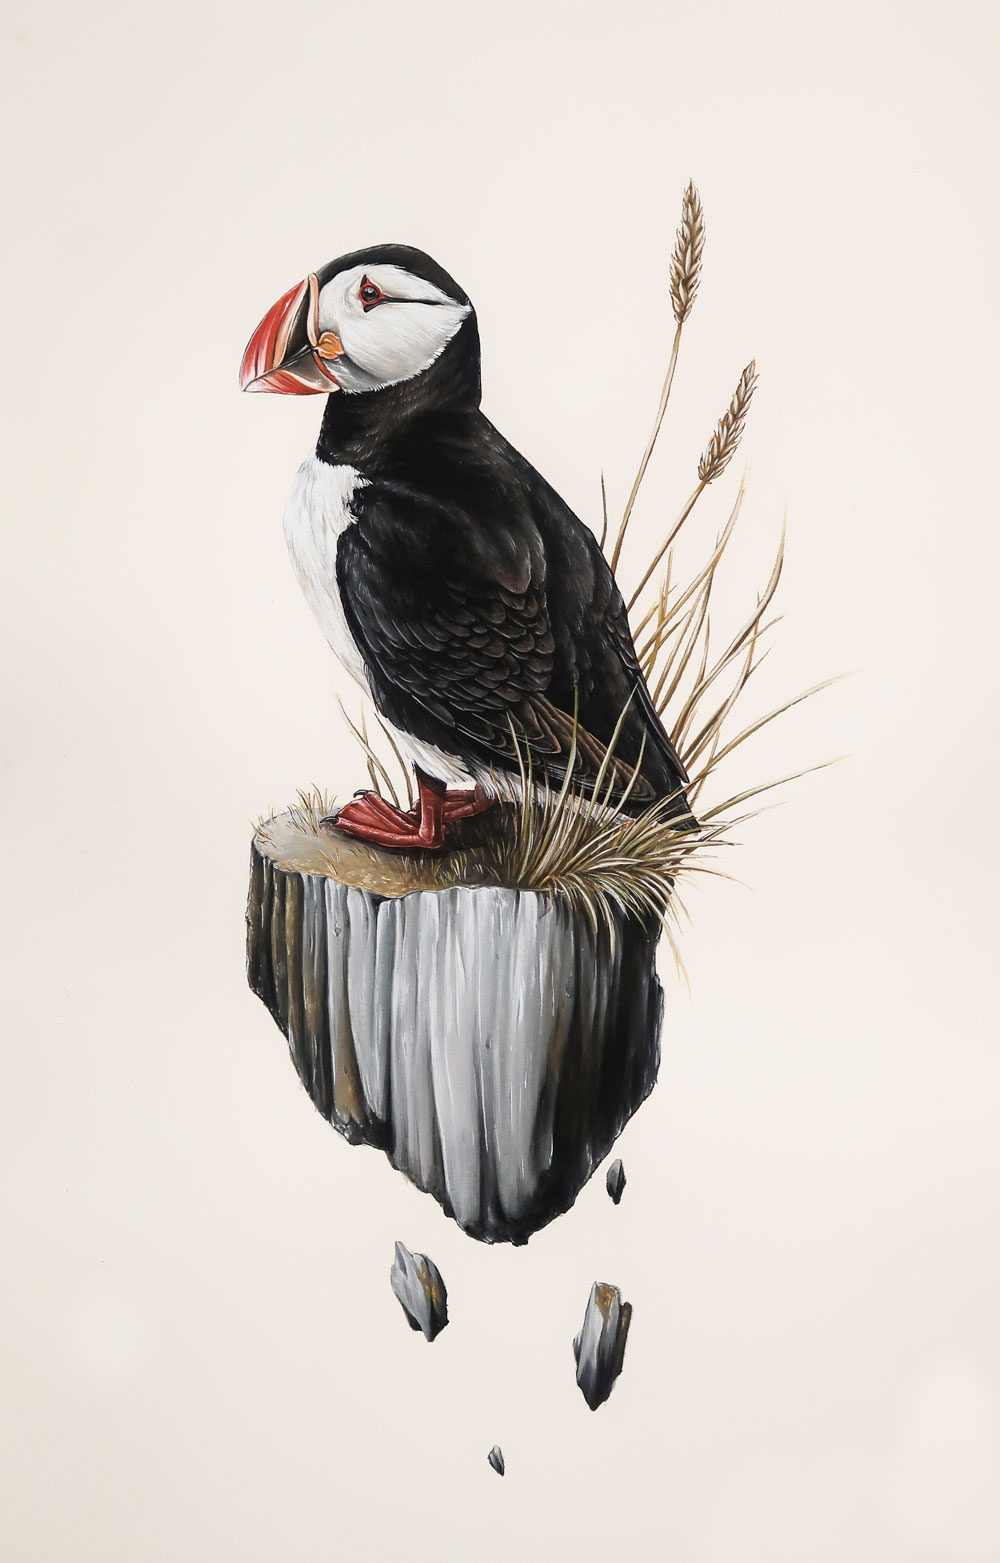 Puffin, Grimsey Island, Iceland. A part of the 'Discovery' series of works.